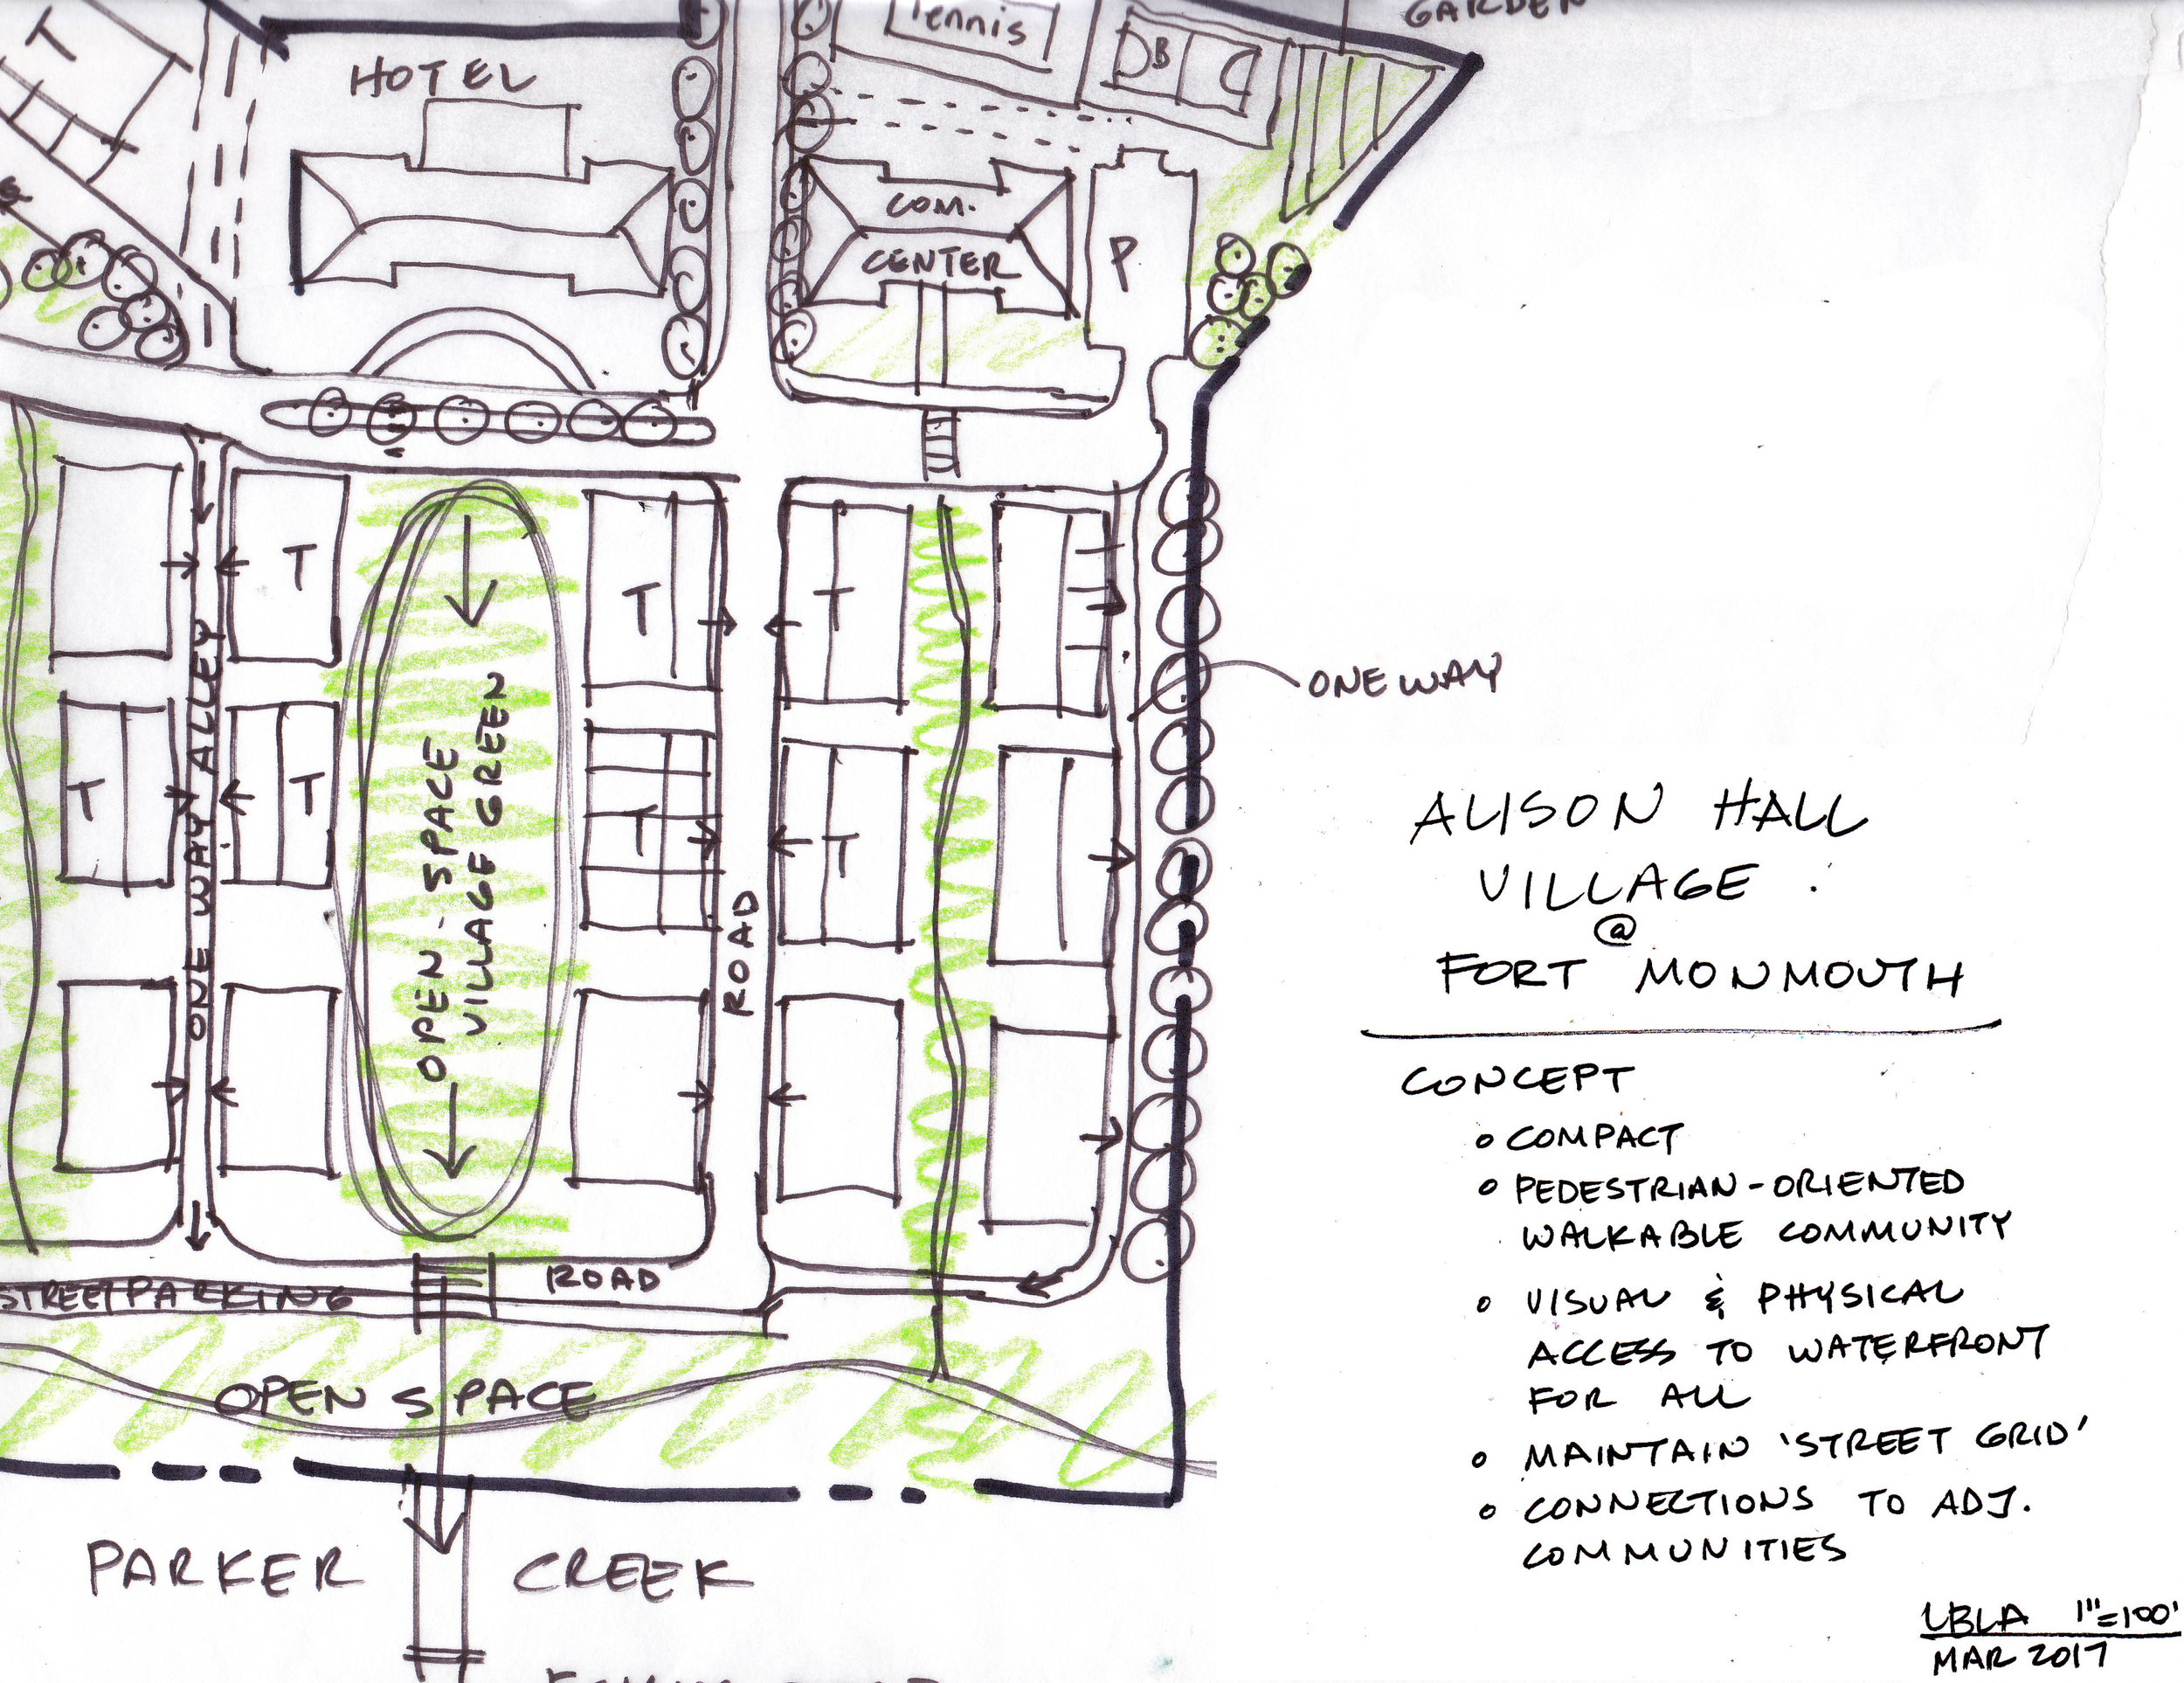 Fort Monmouth concept sketch.jpg